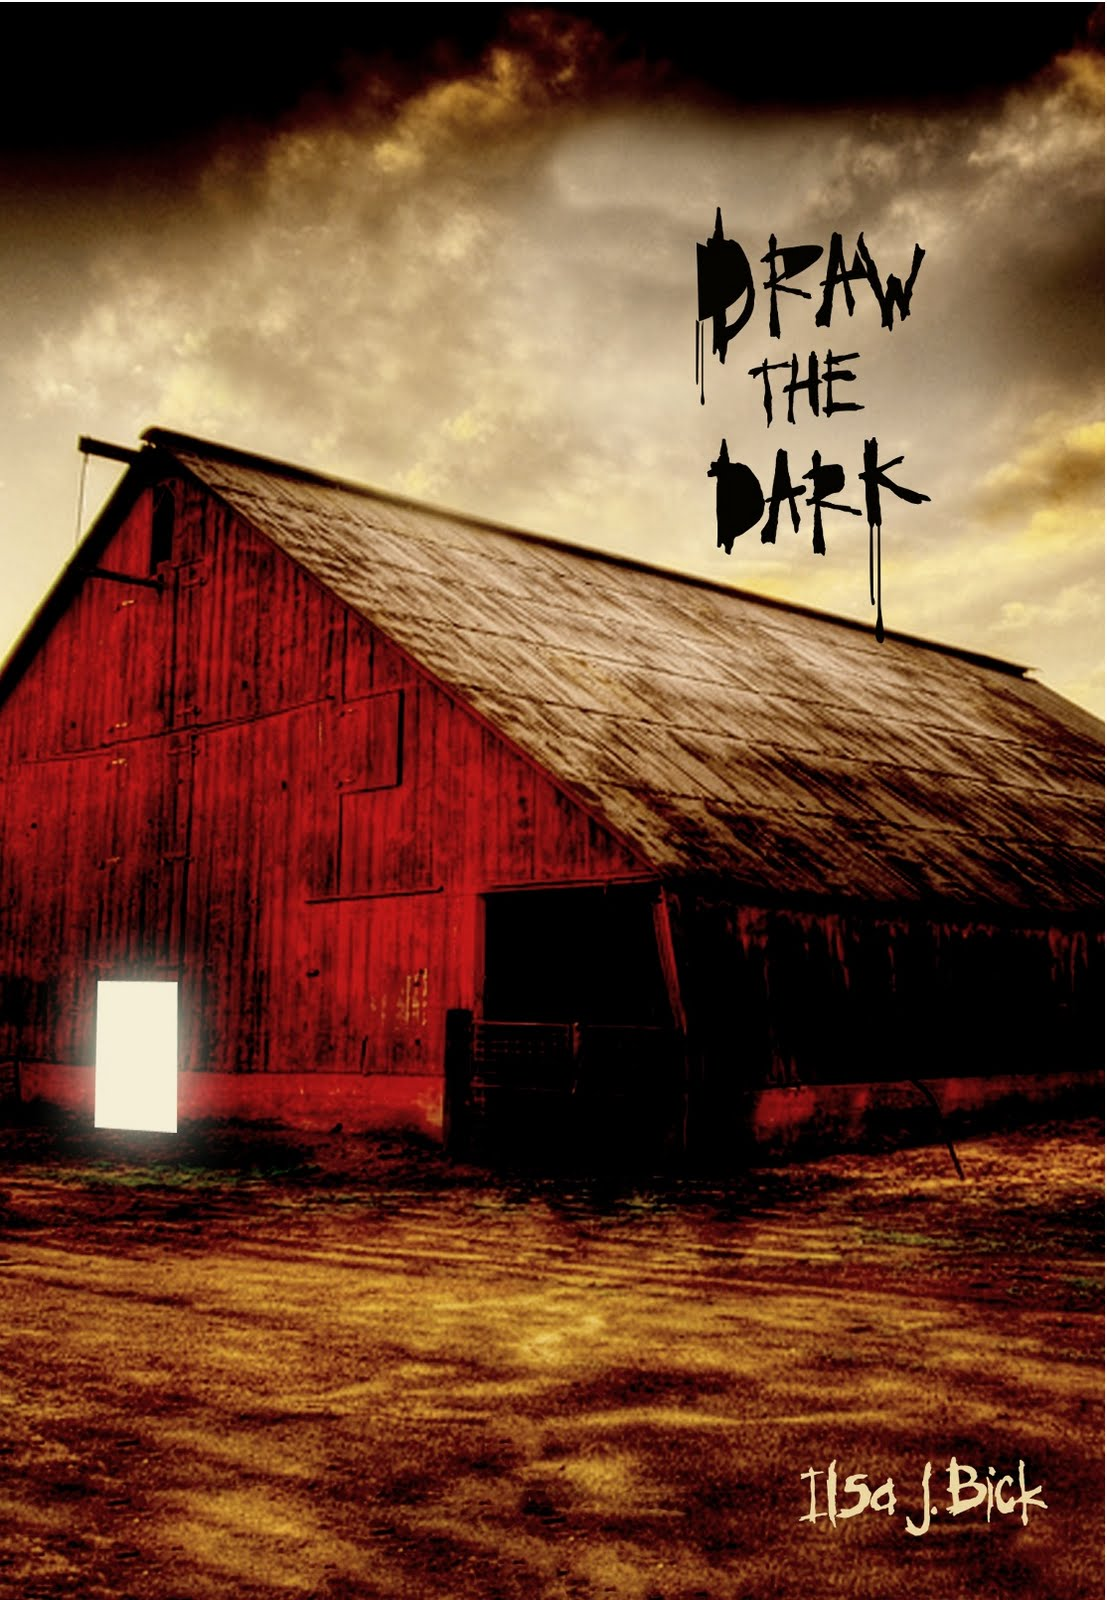 Poster DrawTheDark Author has written 17 stories for Romance, Young Adult, Humor, General, ...